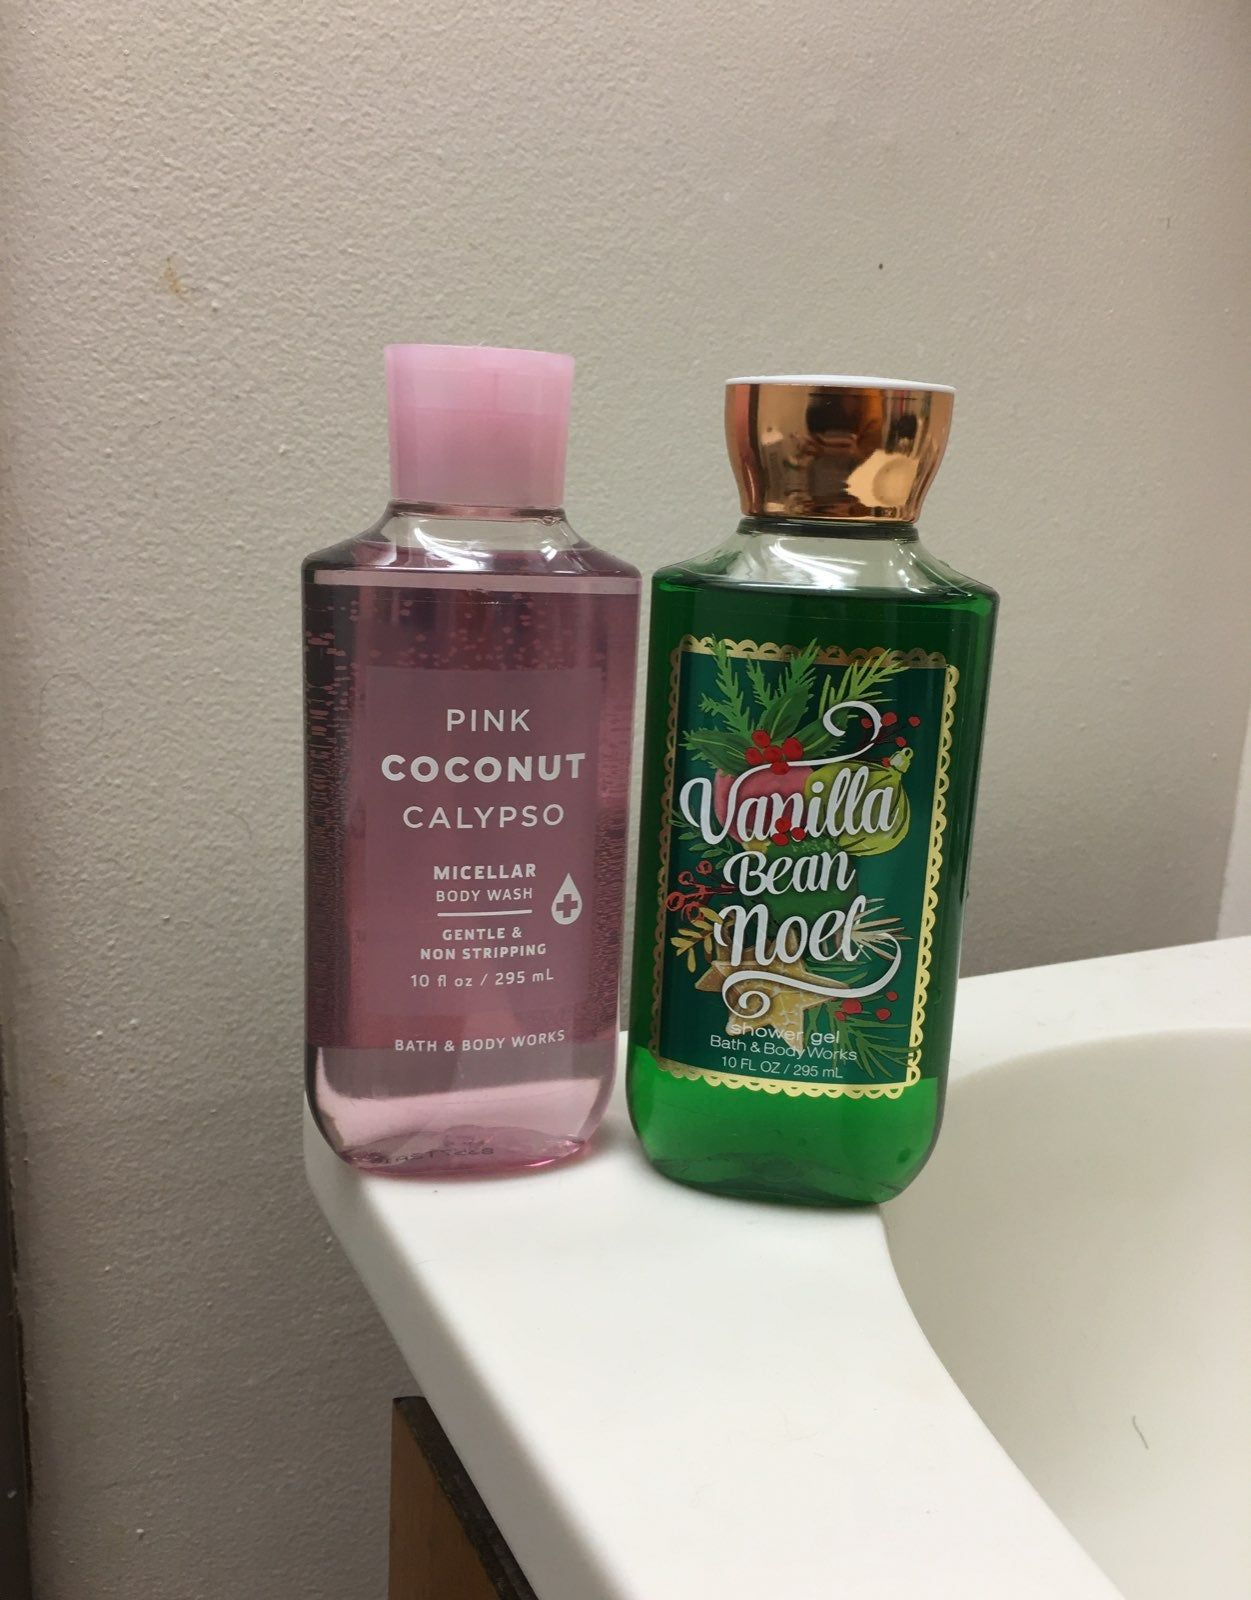 Never Used New Seasonal Body Wash Micellar Body Wash Each Cost 12 50 Selling It Together For 20 Bath And Body Works Bath And Body Bath Gel